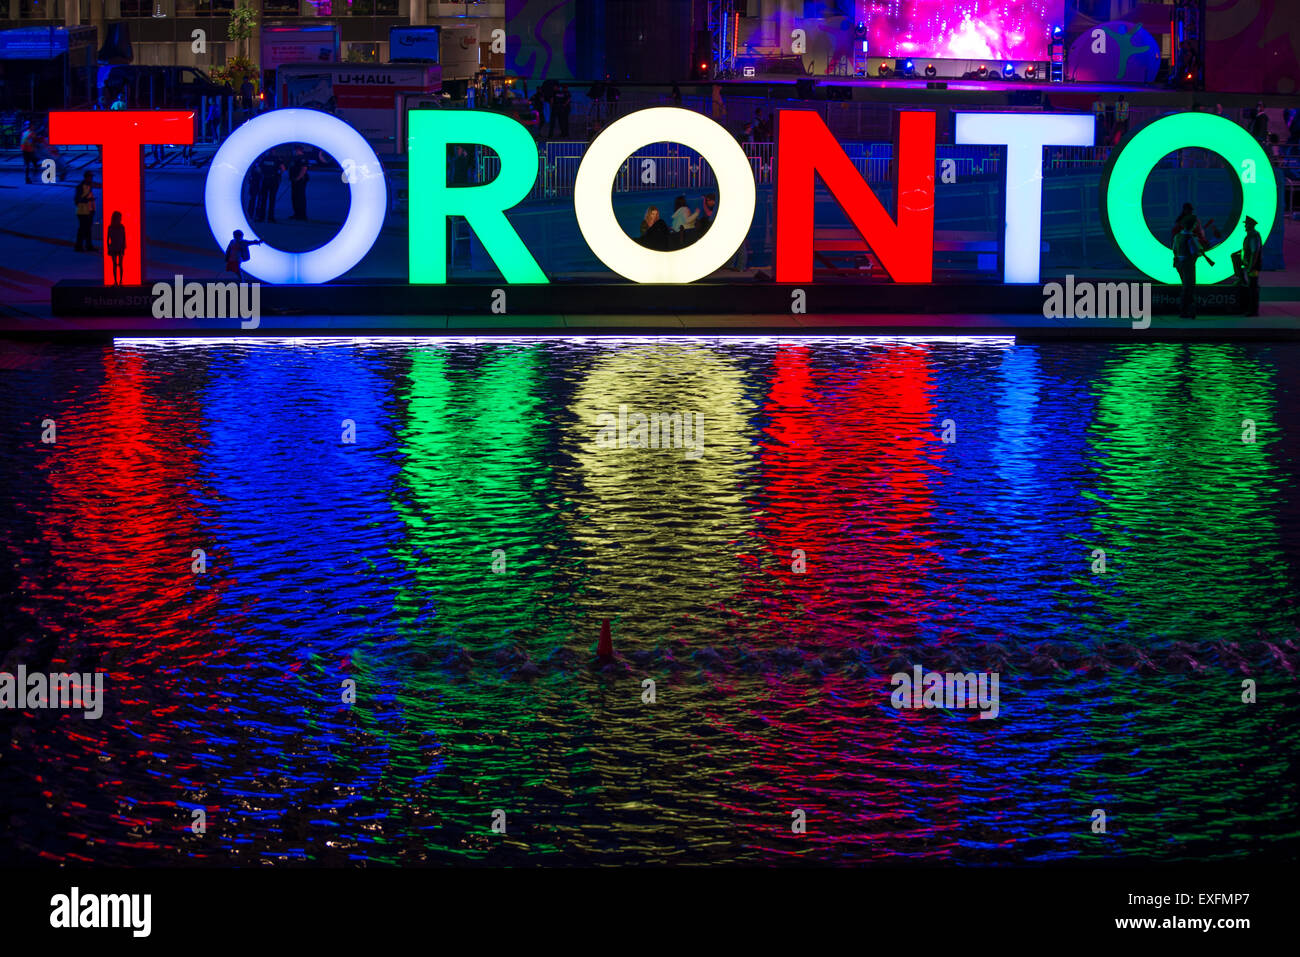 TORONTO,CANADA-JULY 9,2015: The new Toronto sign in Nathan Phillips Square celebrating the PanAm games, a stage - Stock Image